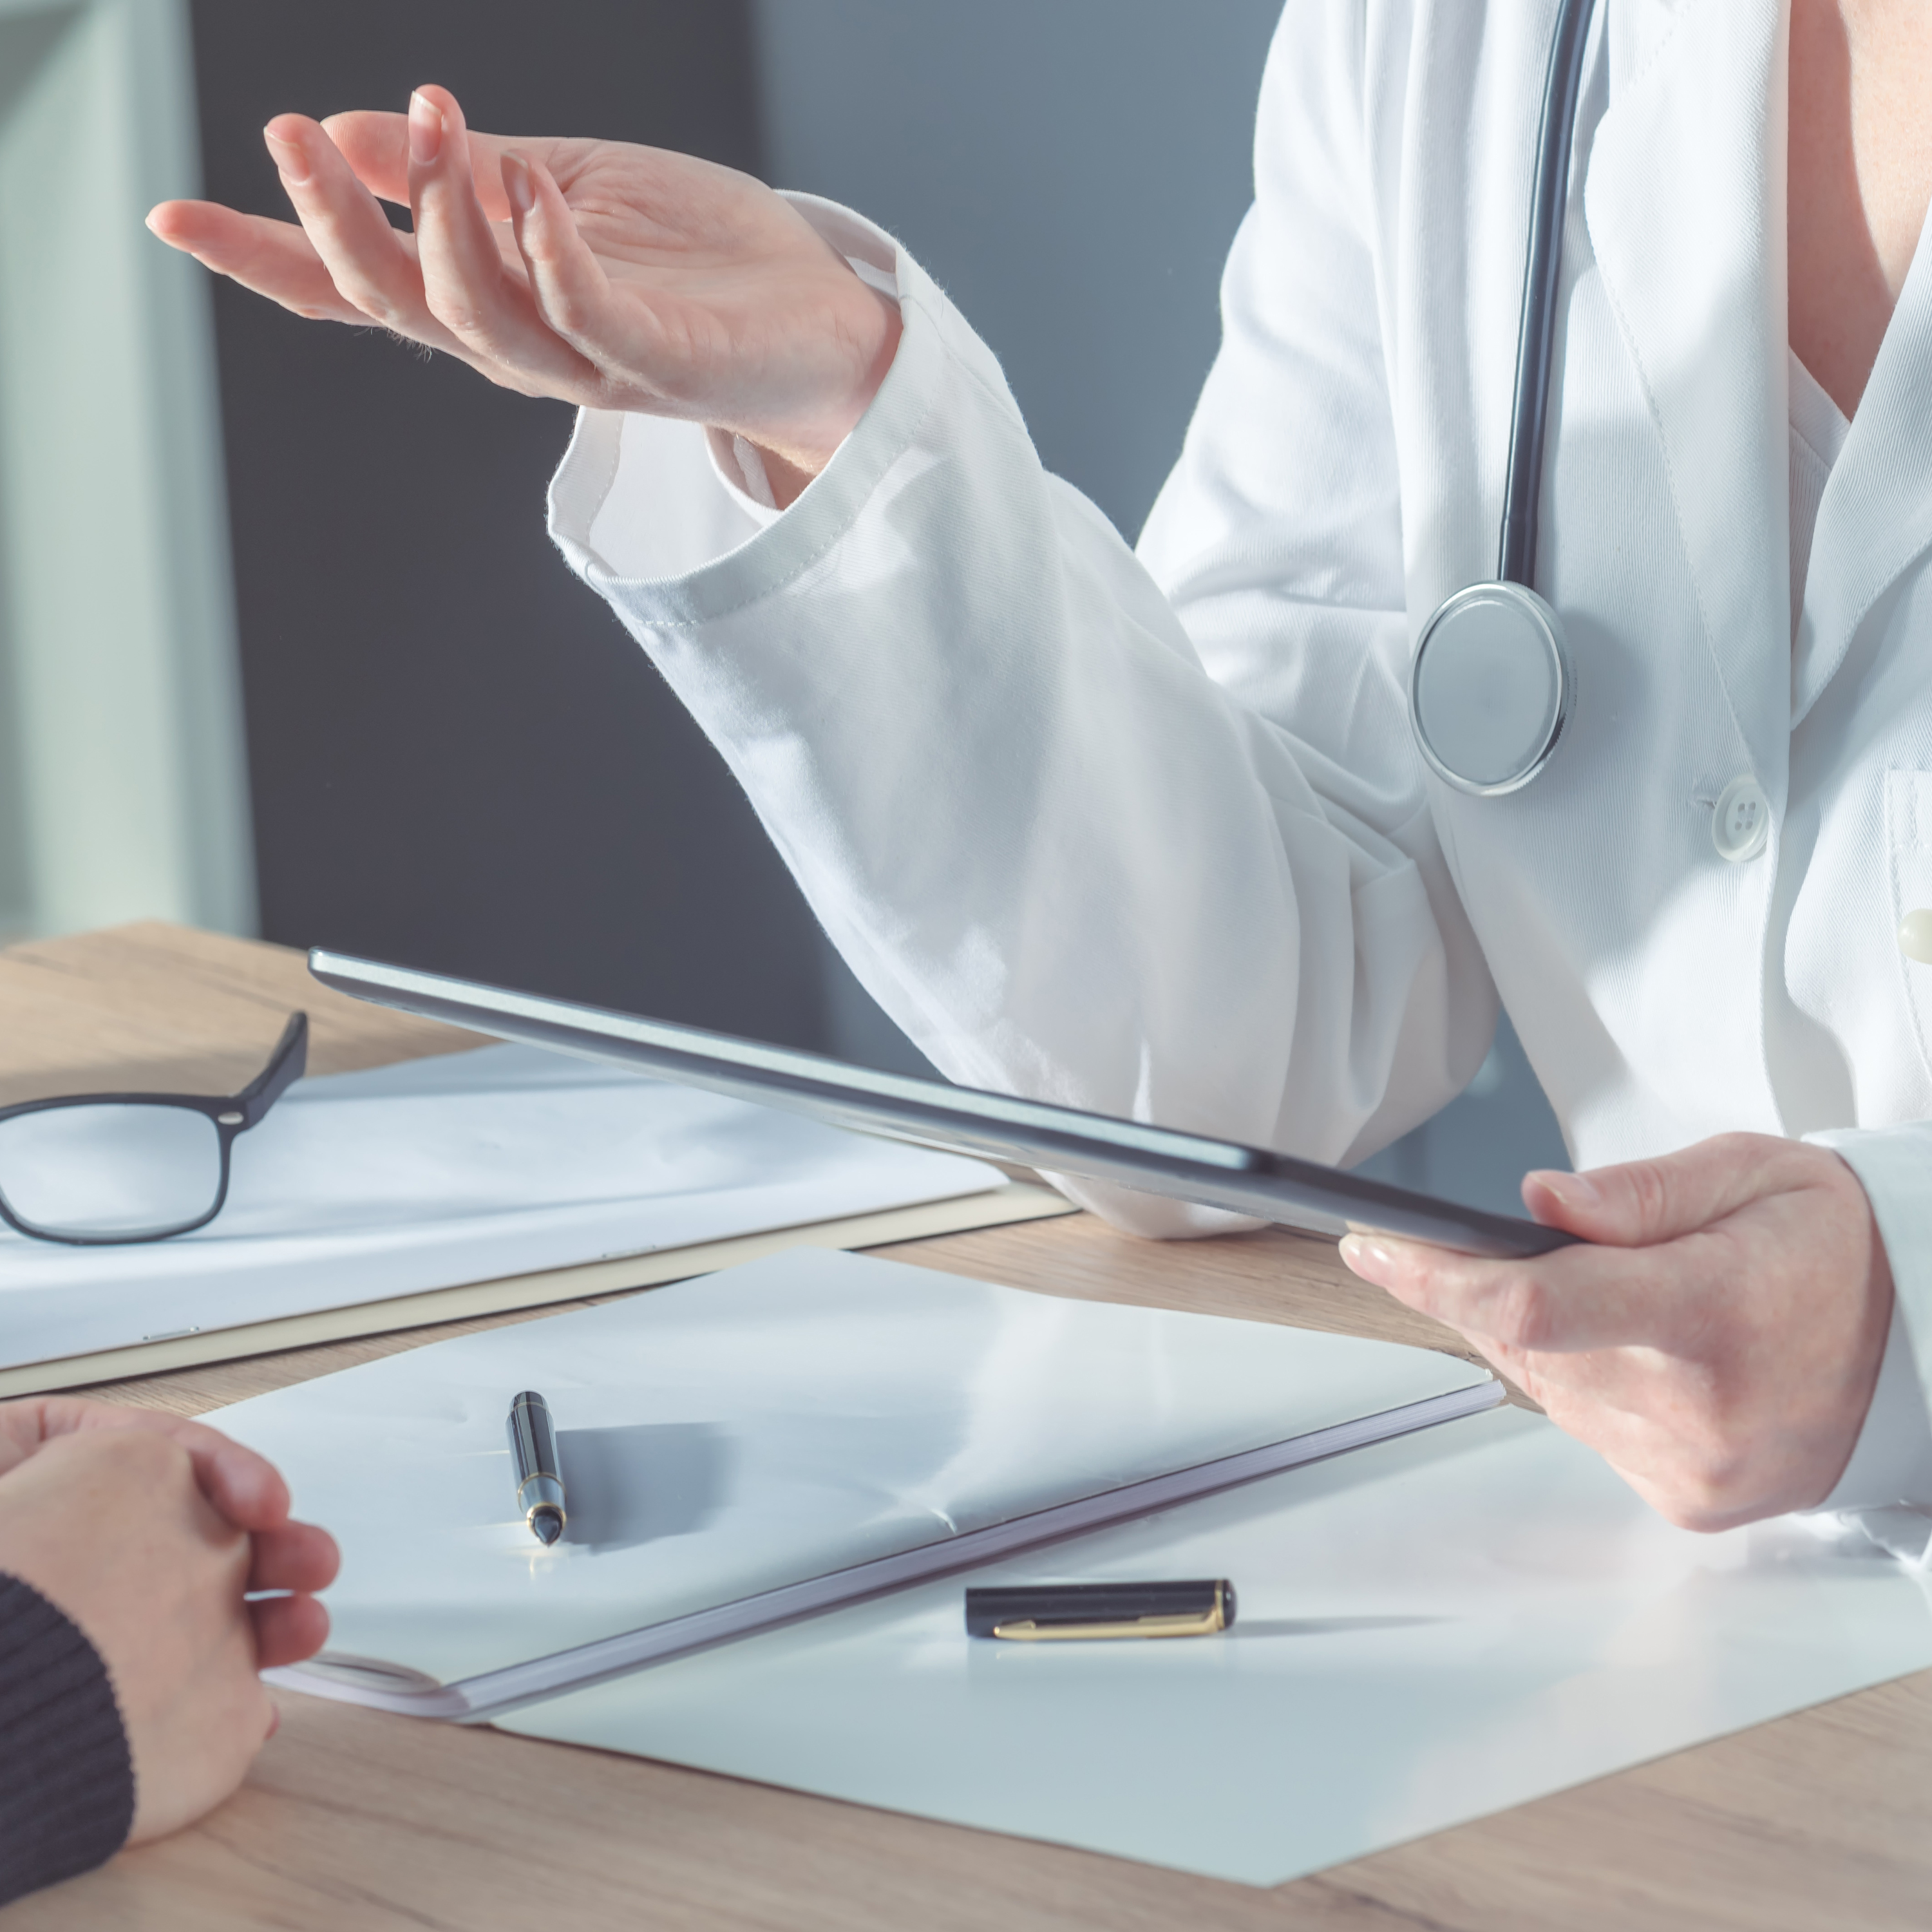 Intelligent Analytics (IA) and real-time data are creating a new paradigm for healthcare by recommending medications based on the successful treatment of similar patients.